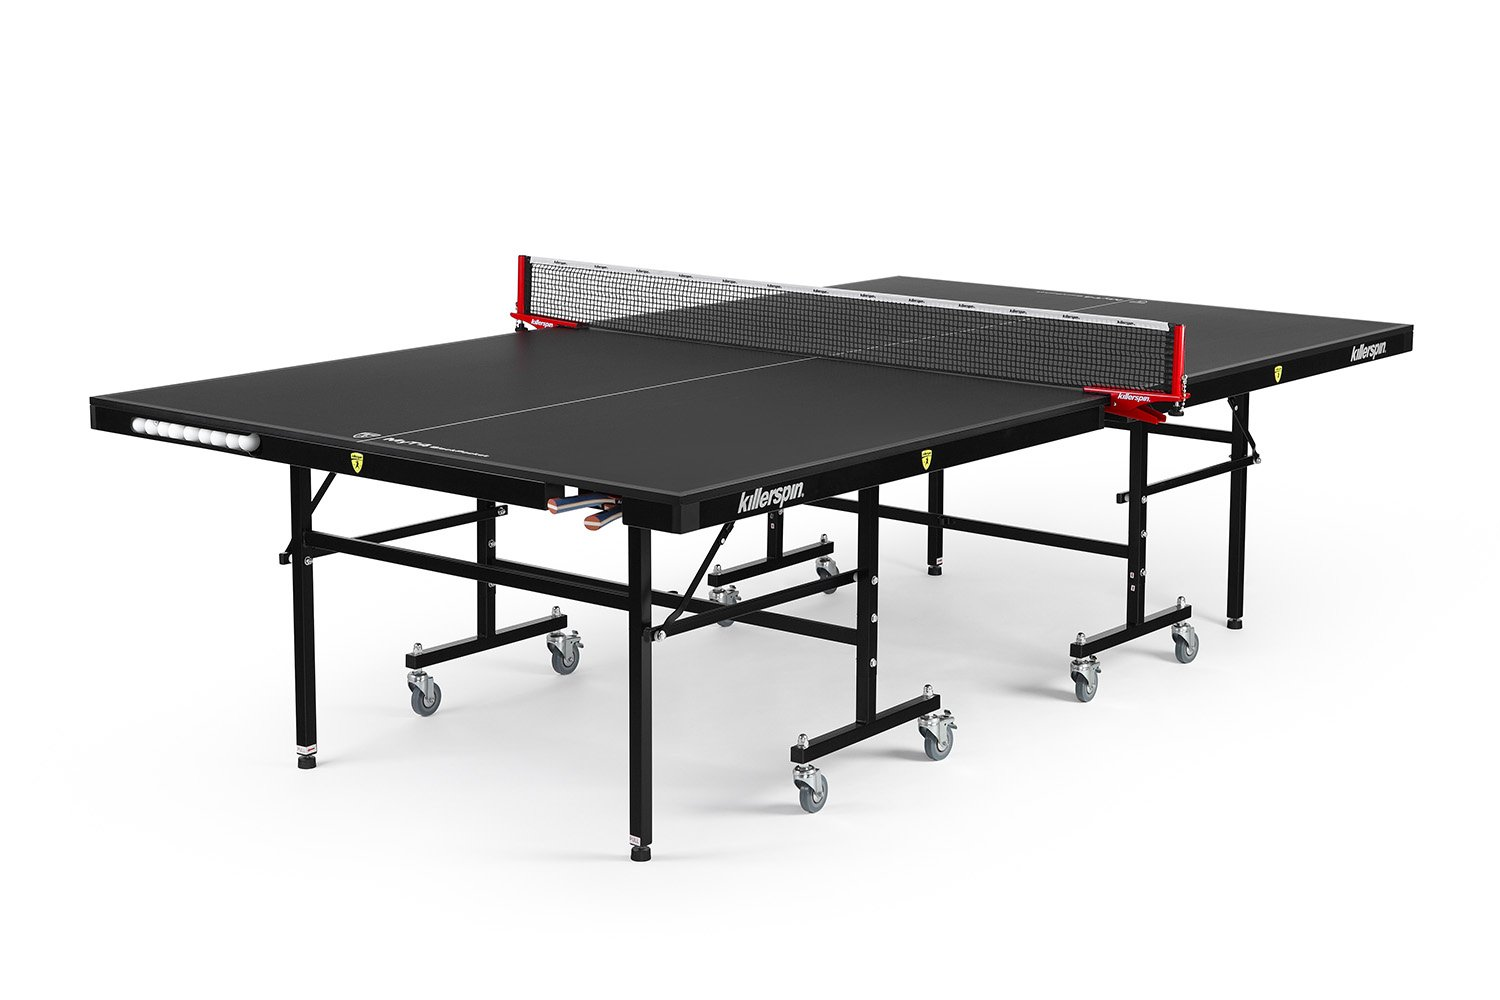 Killerpin MyT4 BlackPocket Table Tennis Table - Premium Pocket Design Ping Pong Table by Killerspin